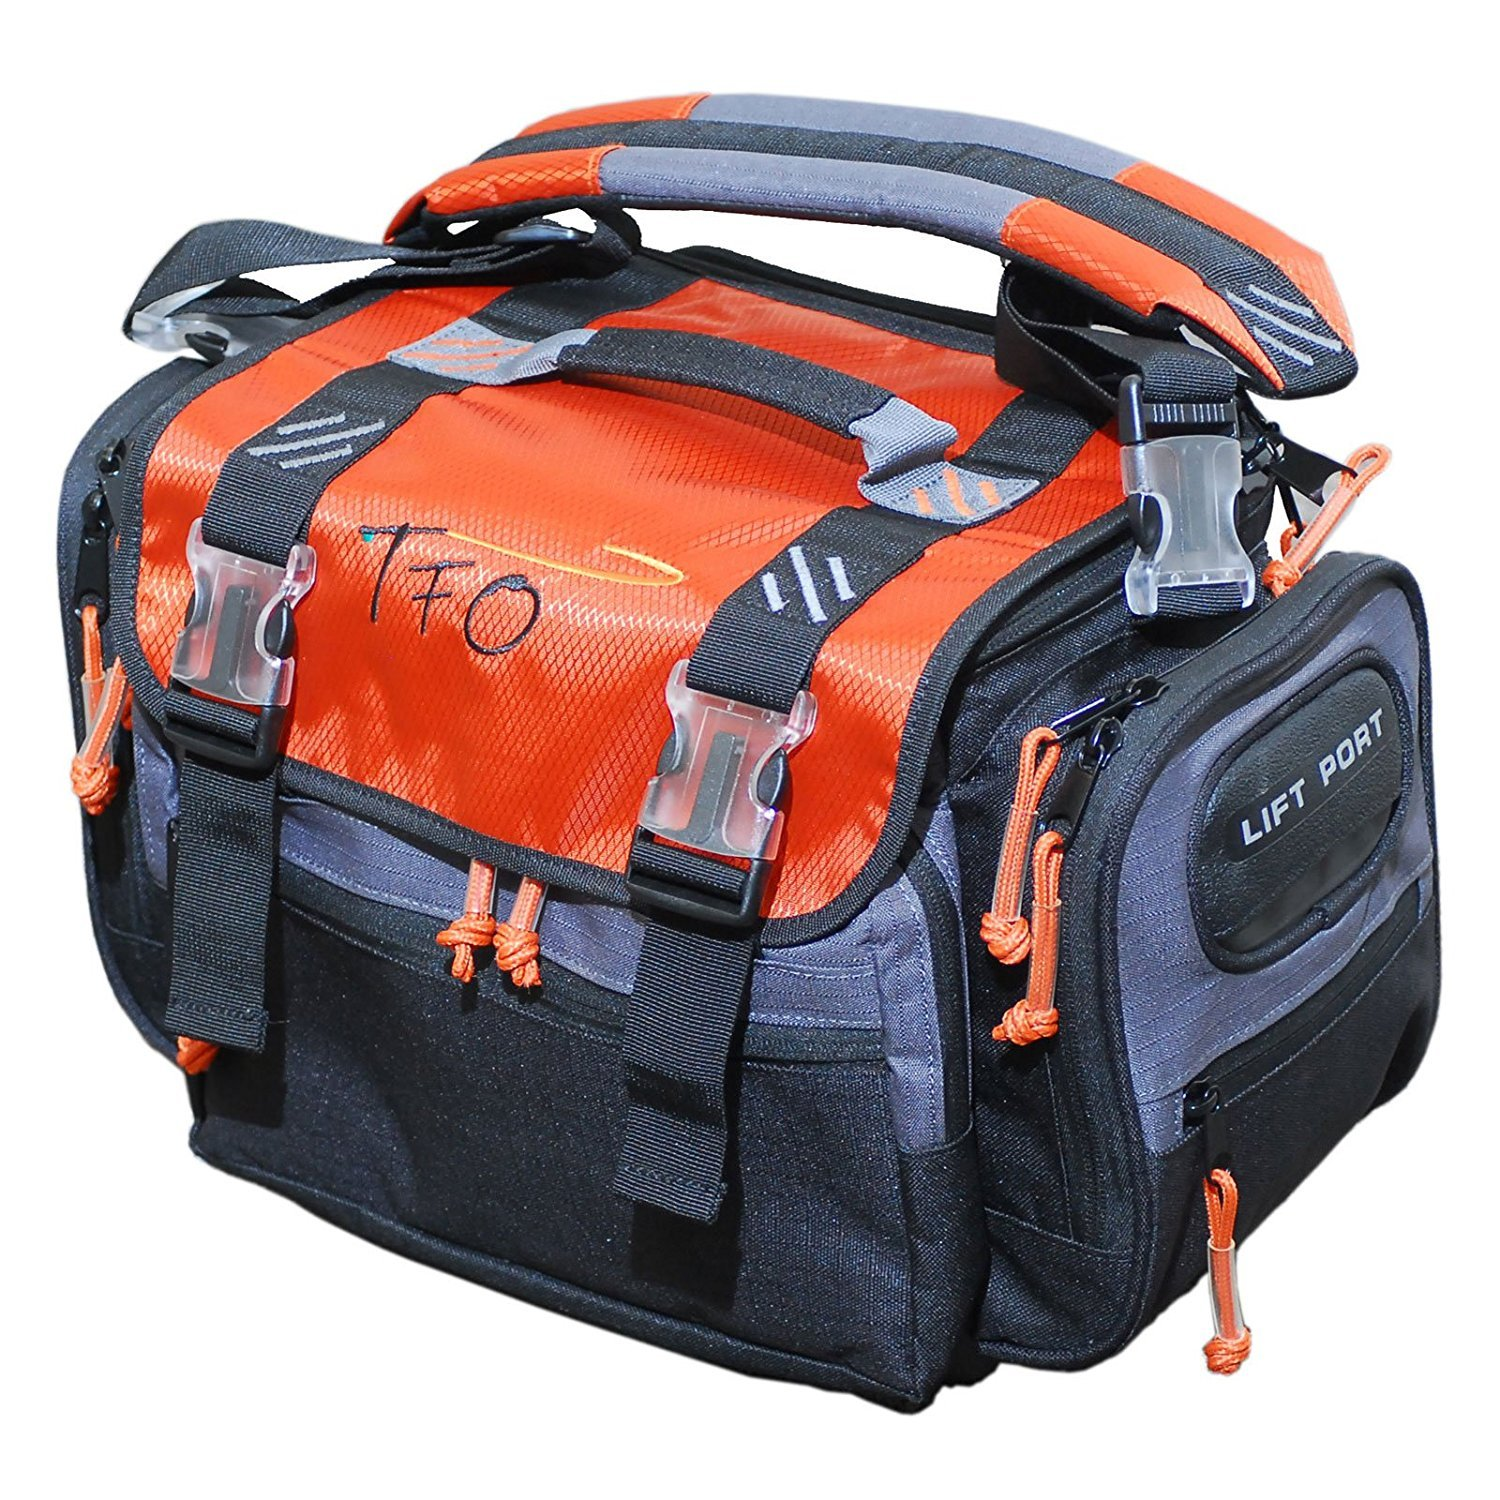 TFO 1695FBM Carry All Fishing Bag-Medium Size 16'' x 9.5'' x 11'', Red/Grey/Black by TFO